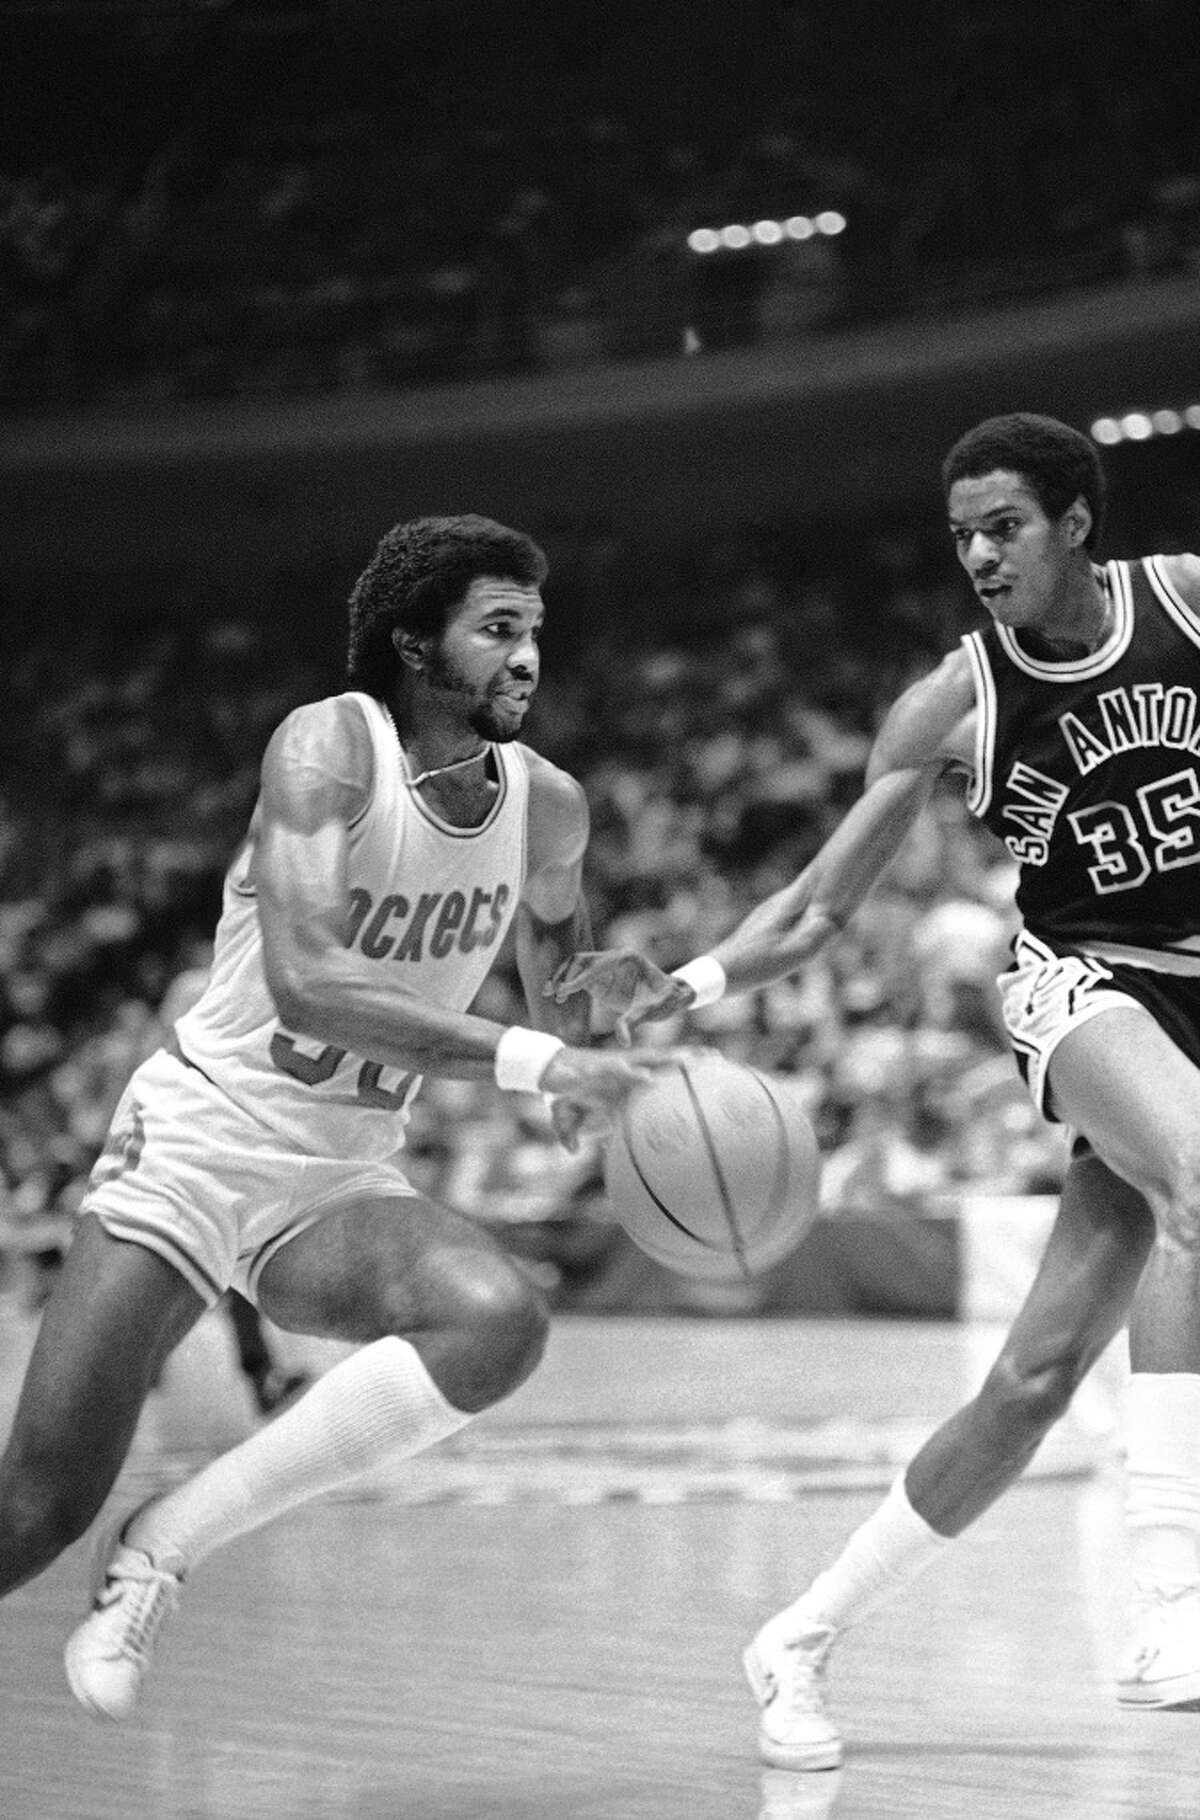 1980: First playoff meeting The teams' first postseason encounter came in 1980, with the Rockets winning the best-of-3 series. Houston rolled 141-120 in Game 3 at The Summit behind big games from Moses Malone (37 points), Calvin Murphy (33) and Robert Reid (20, pictured).